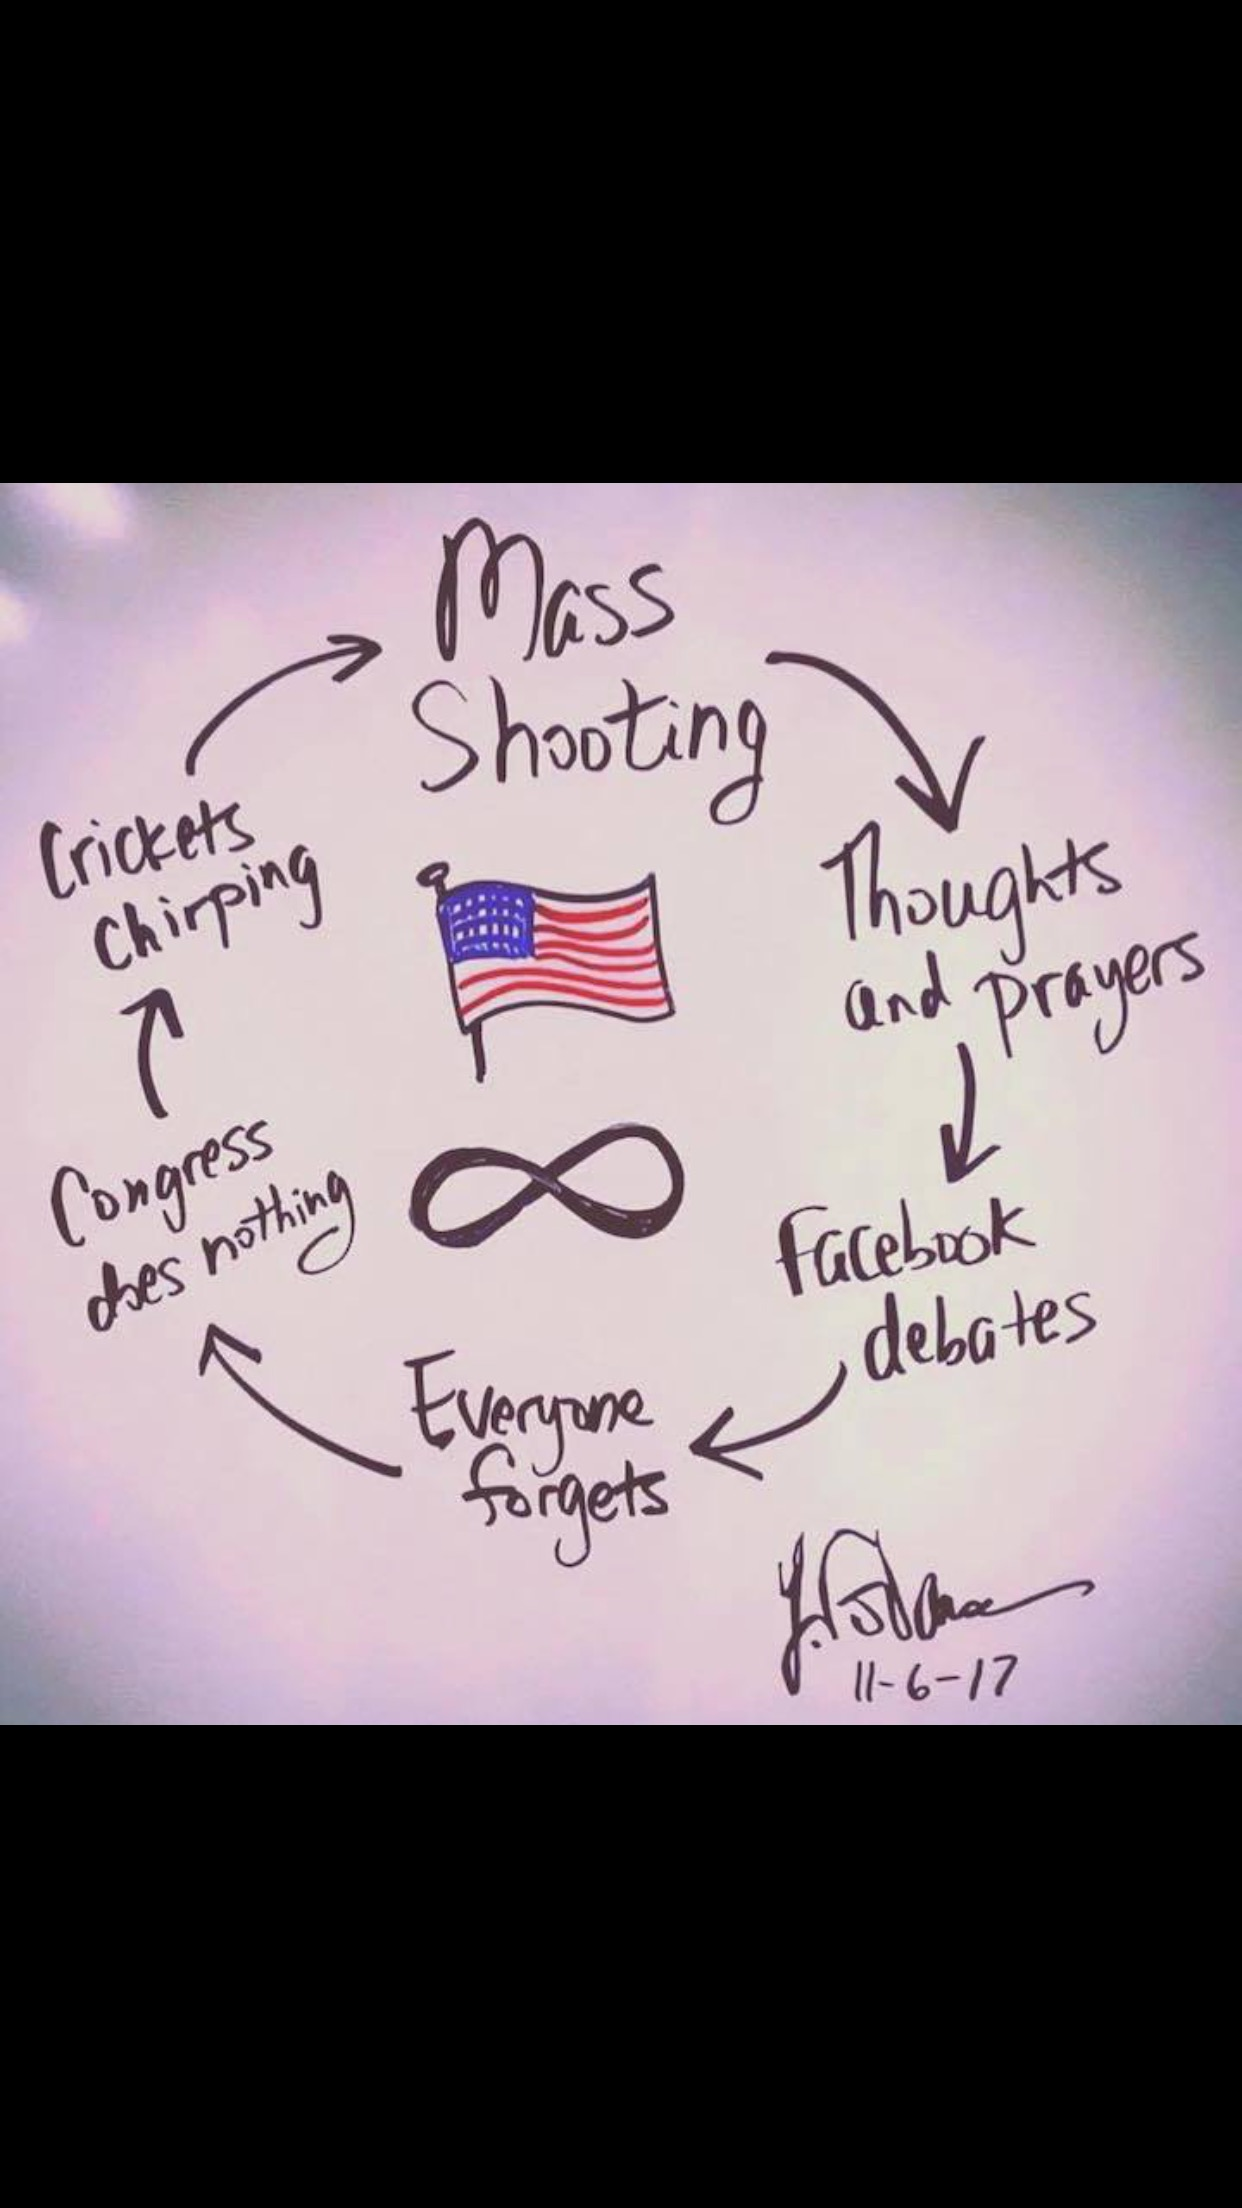 Mass Shooting Cycle.jpeg